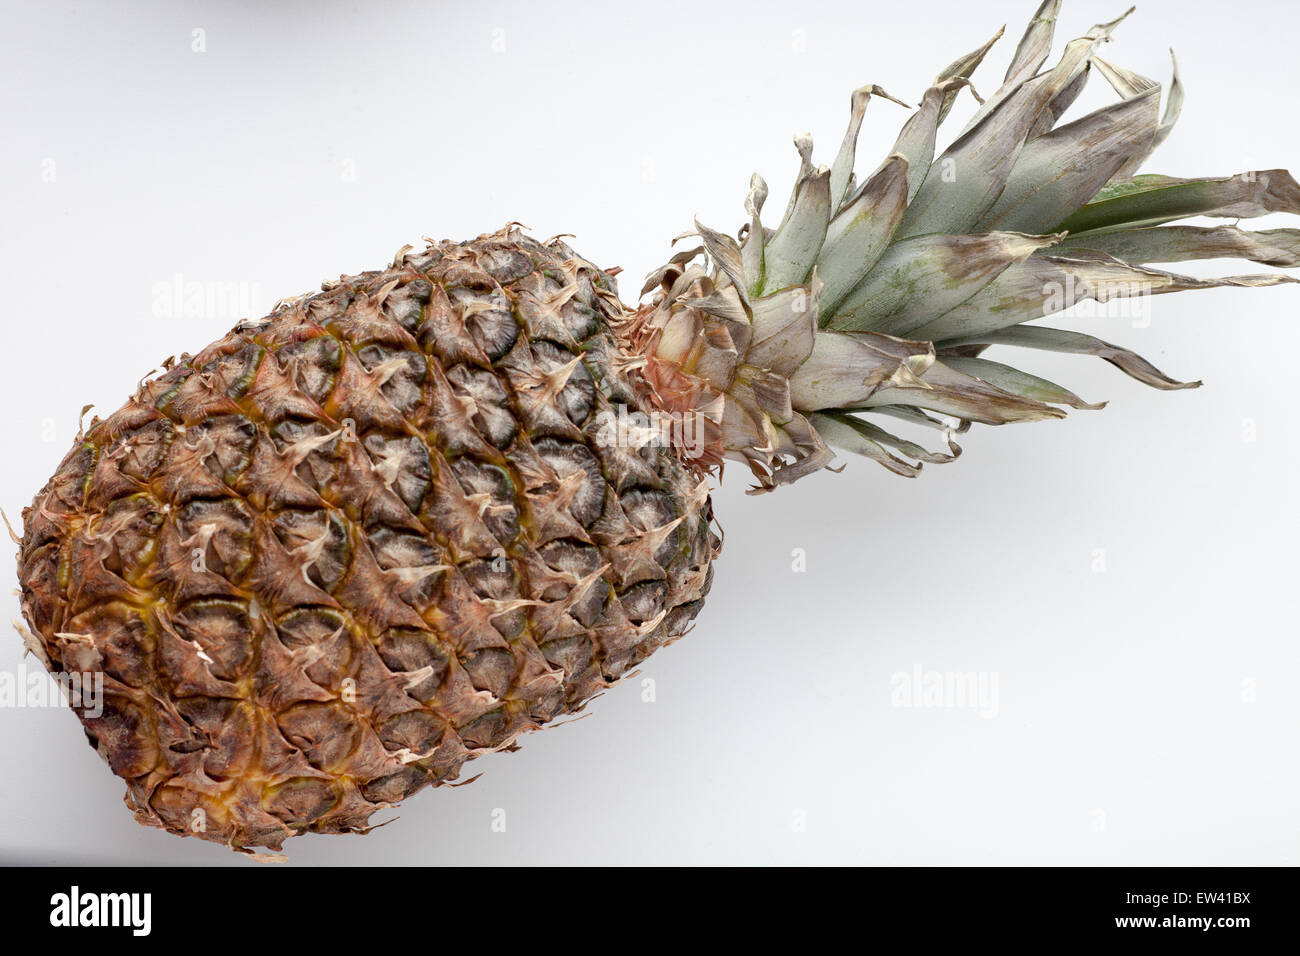 Ripe juicy pineapple on a white background - Stock Image